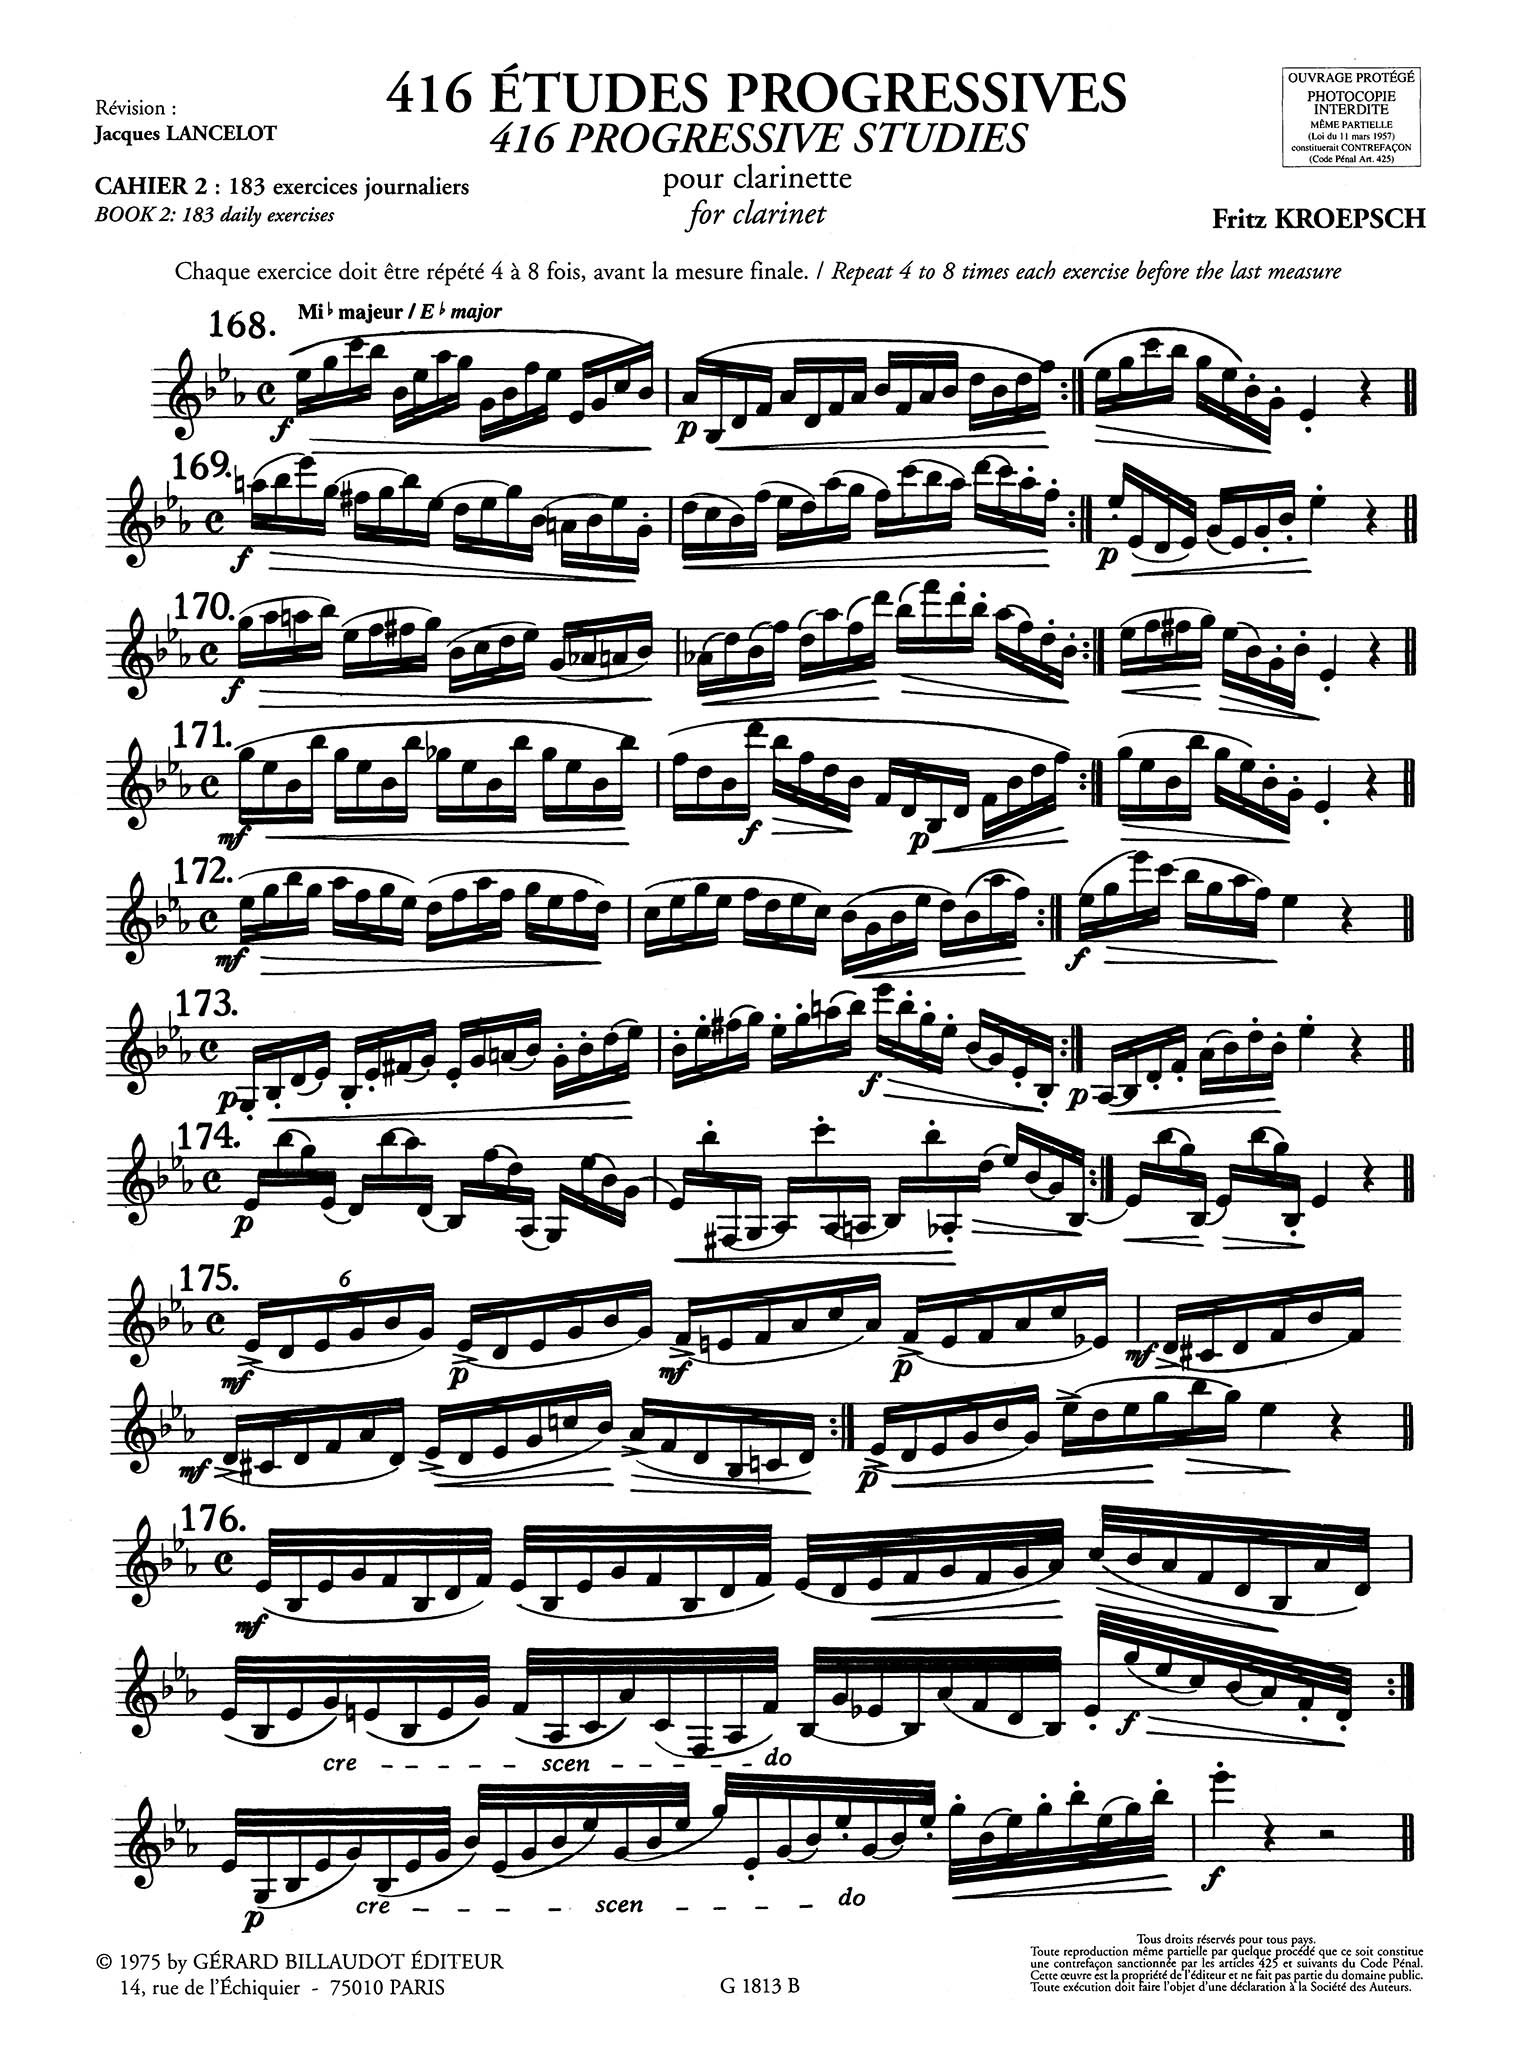 416 Progressive Studies for Clarinet, Book 2: 183 Daily Exercises Page 2